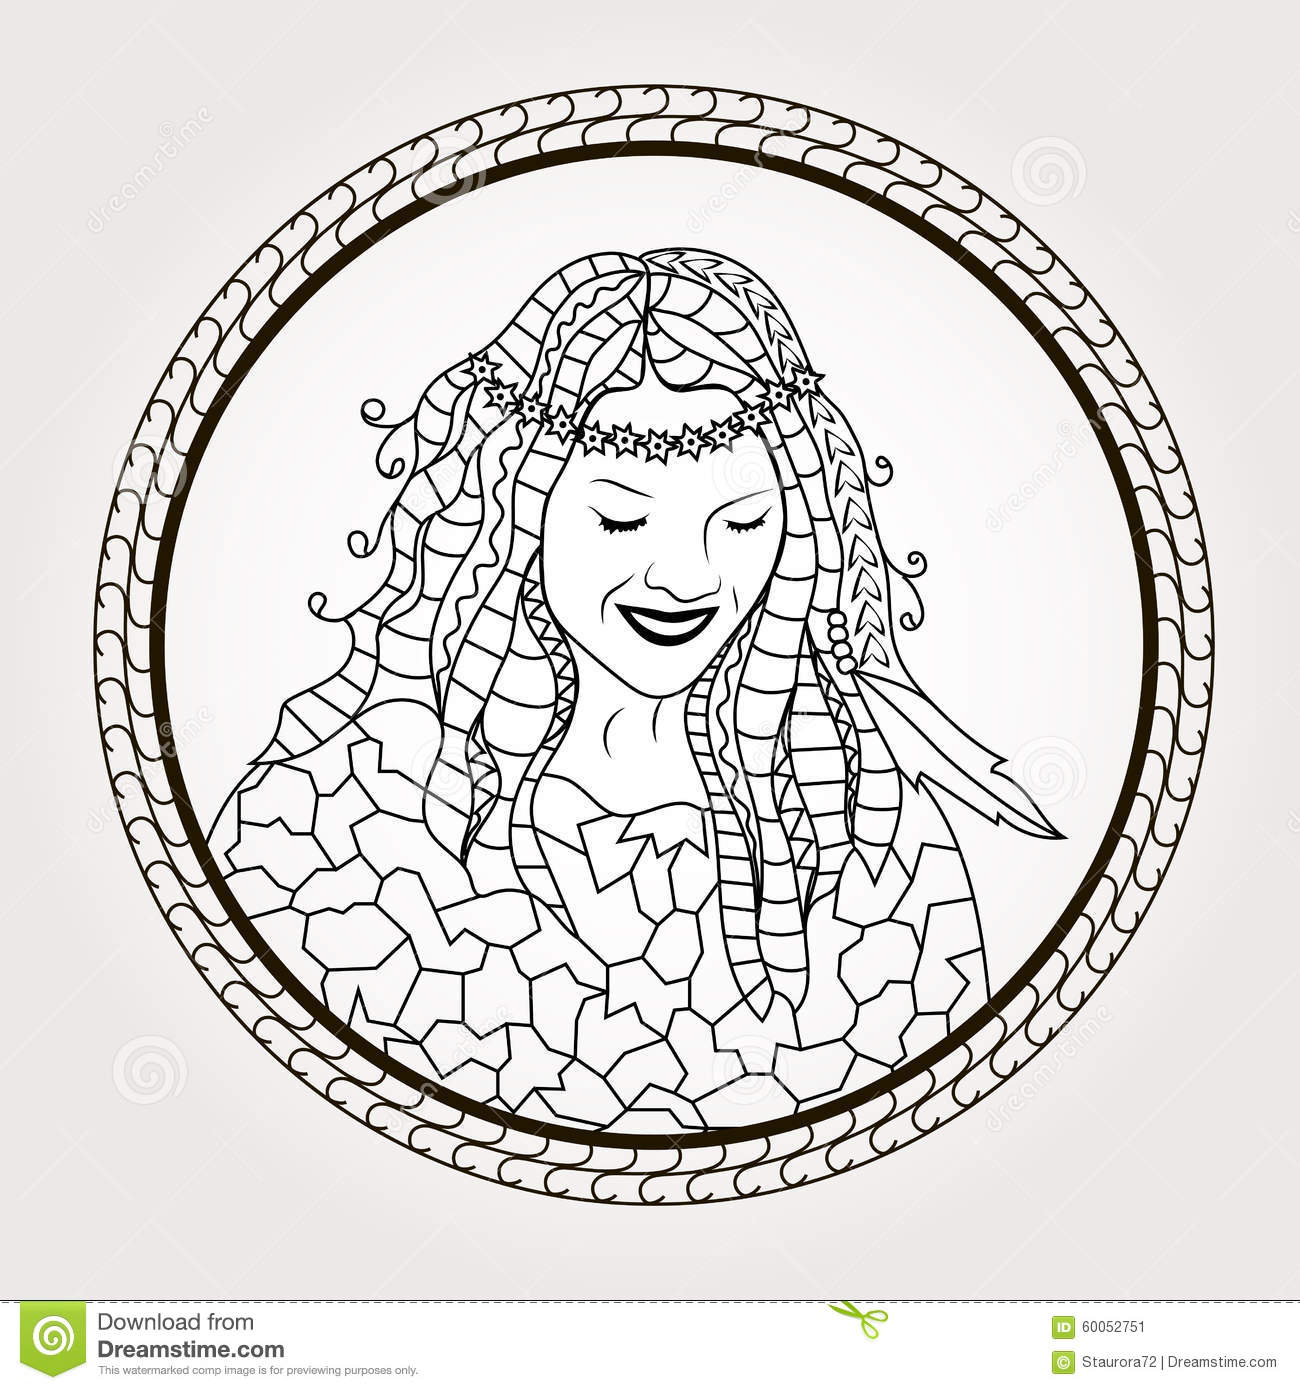 Reflection In Mirror Coloring SheetsInPrintable Coloring Pages